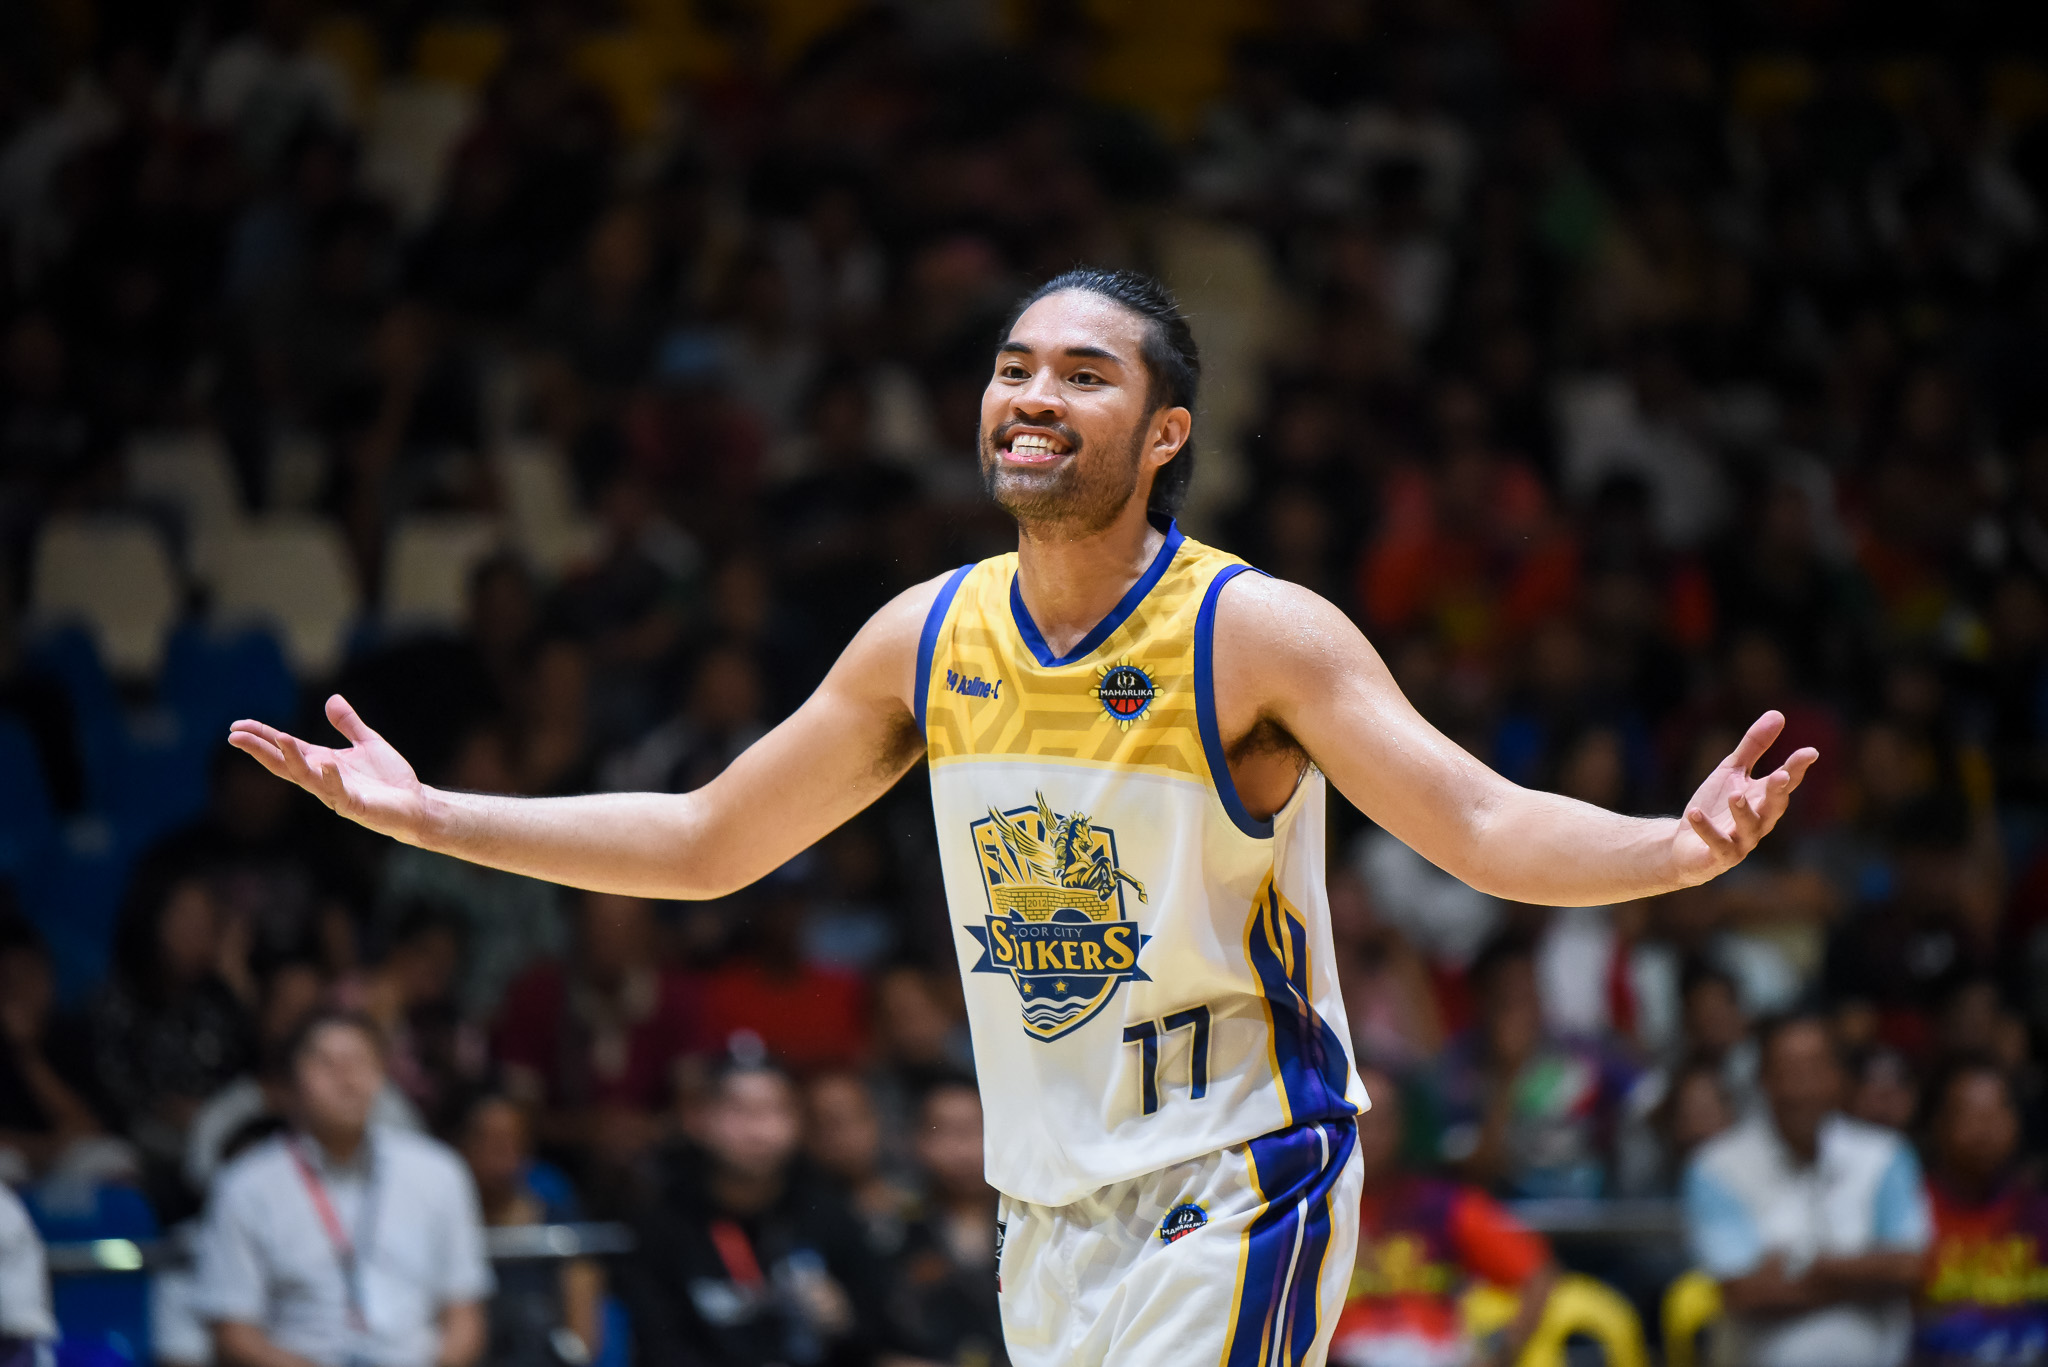 Chooks-MPBL-2019-Bacoor-vs-Gen-San-Banal Gab Banal hopes PBA return inspires others to not give up on their dreams Basketball News PBA  - philippine sports news